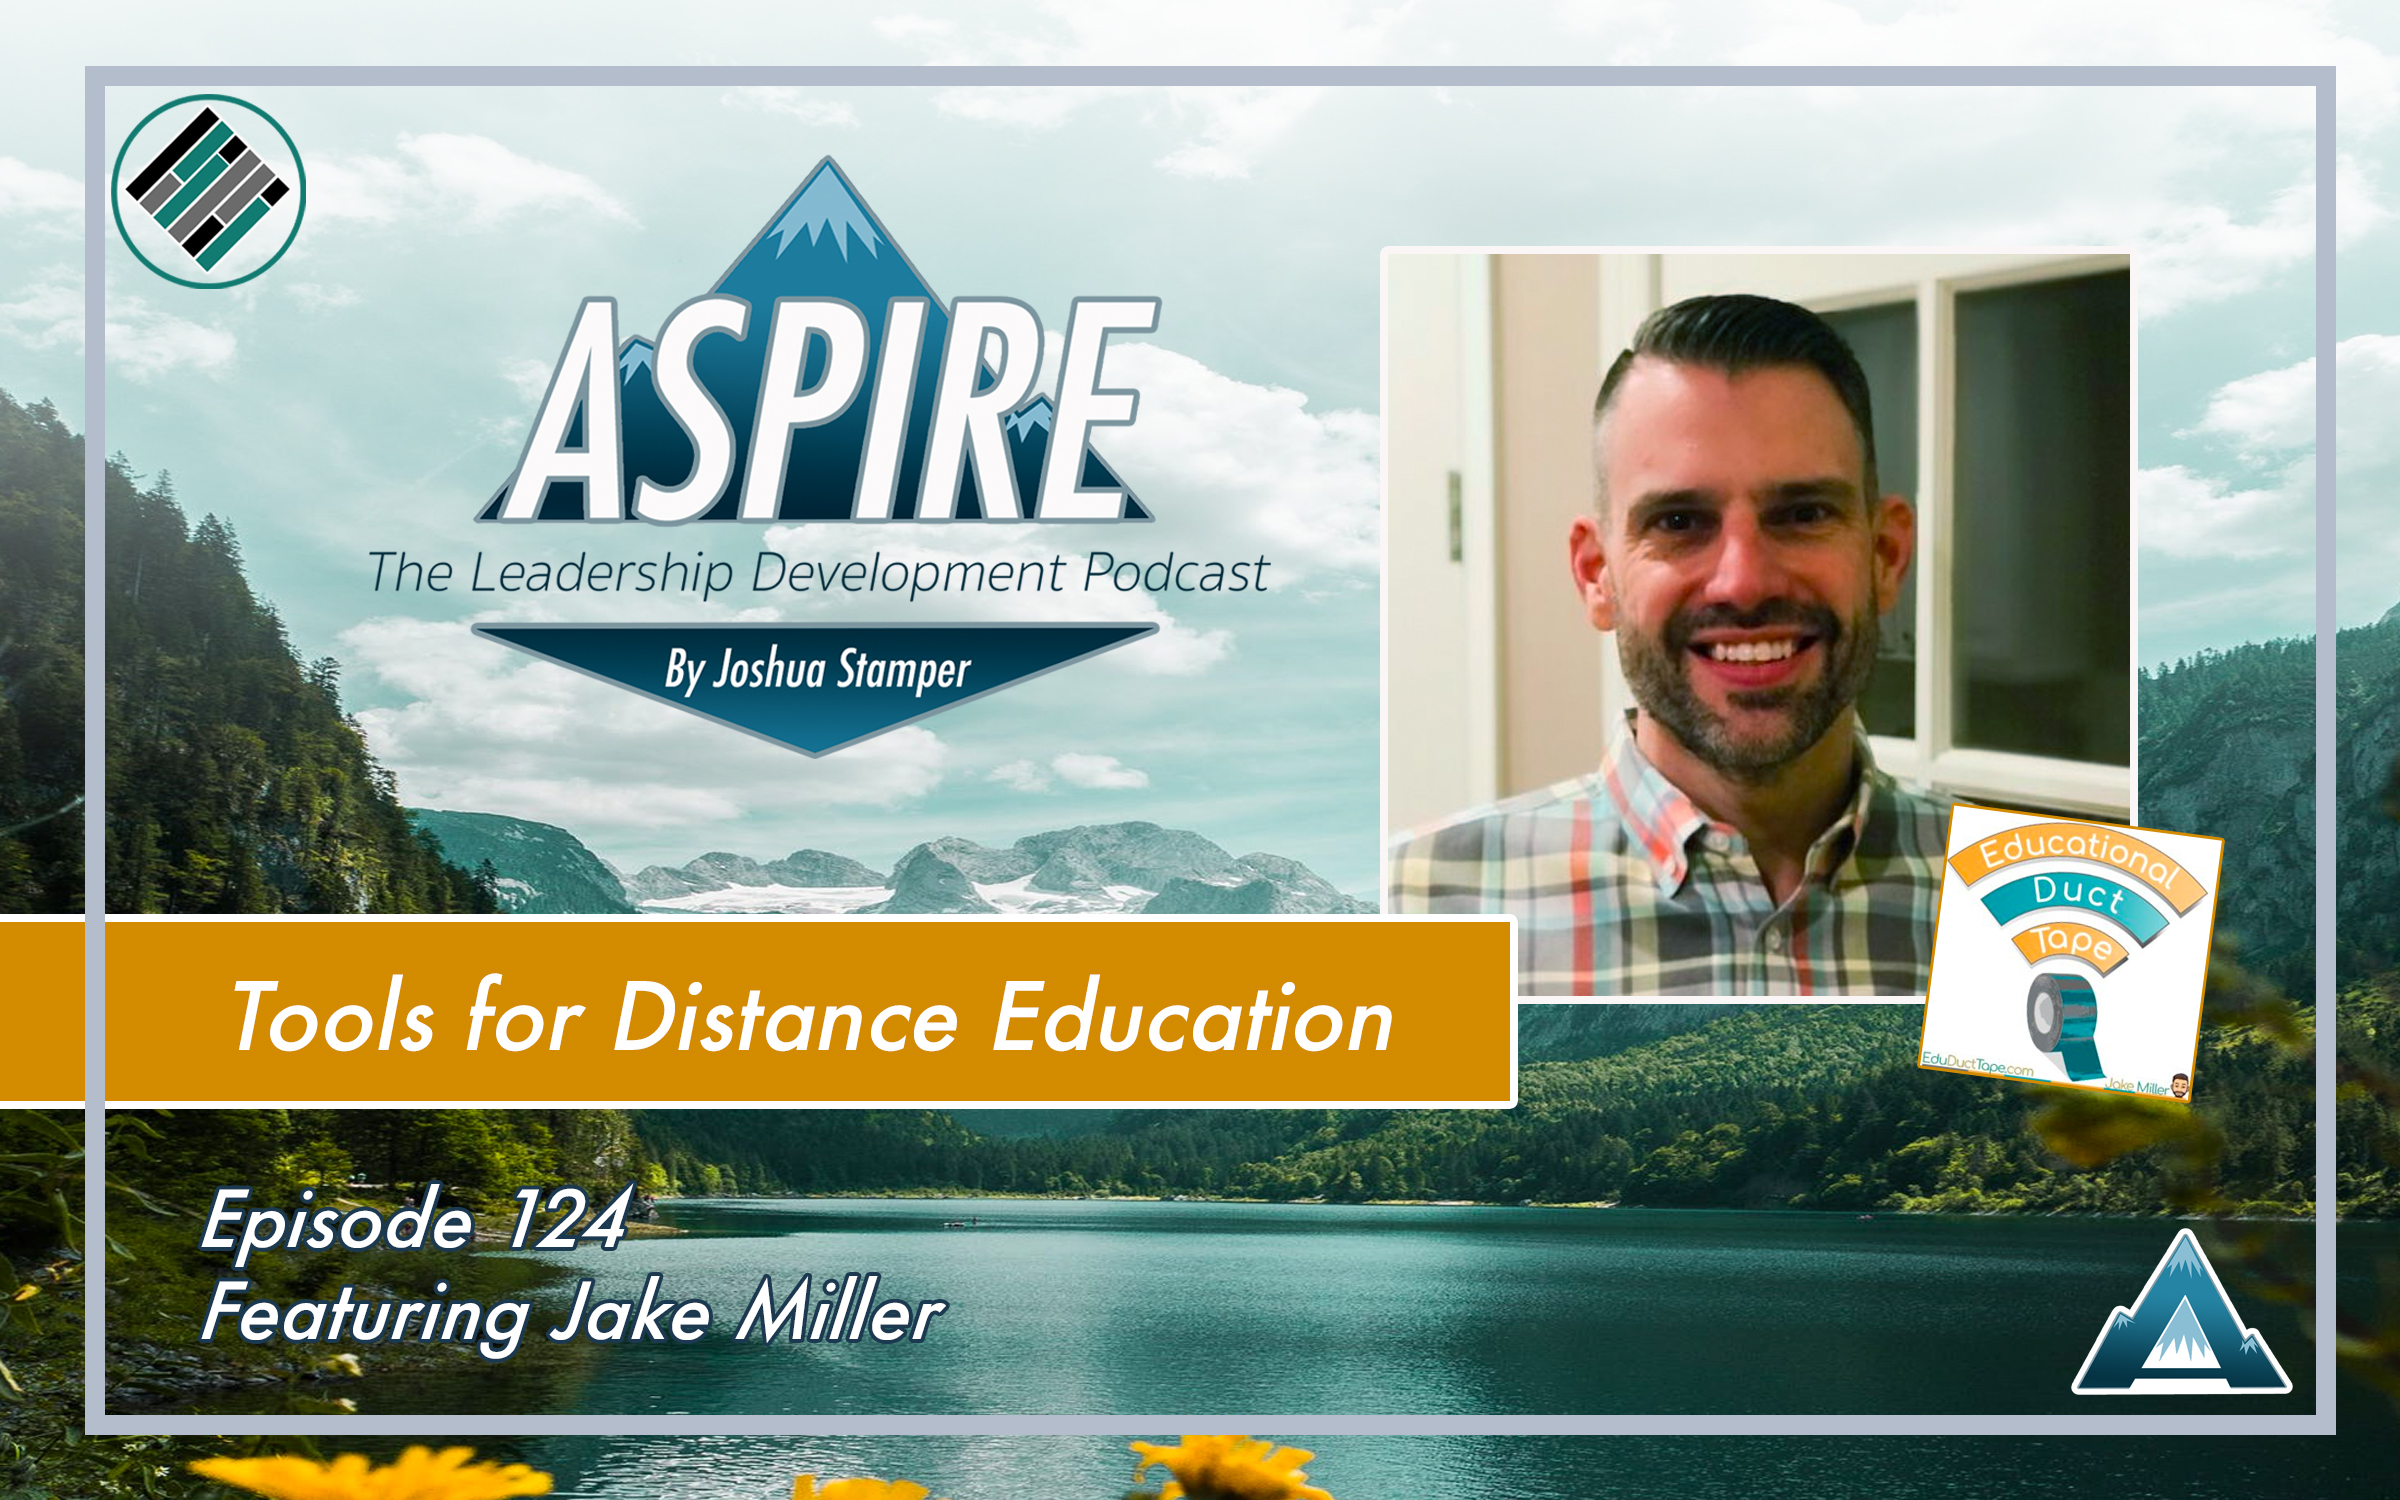 Jake Miller, Joshua Stamper, Aspire: The Leadership Development Podcast, Educational Duct Tape, Distance Education